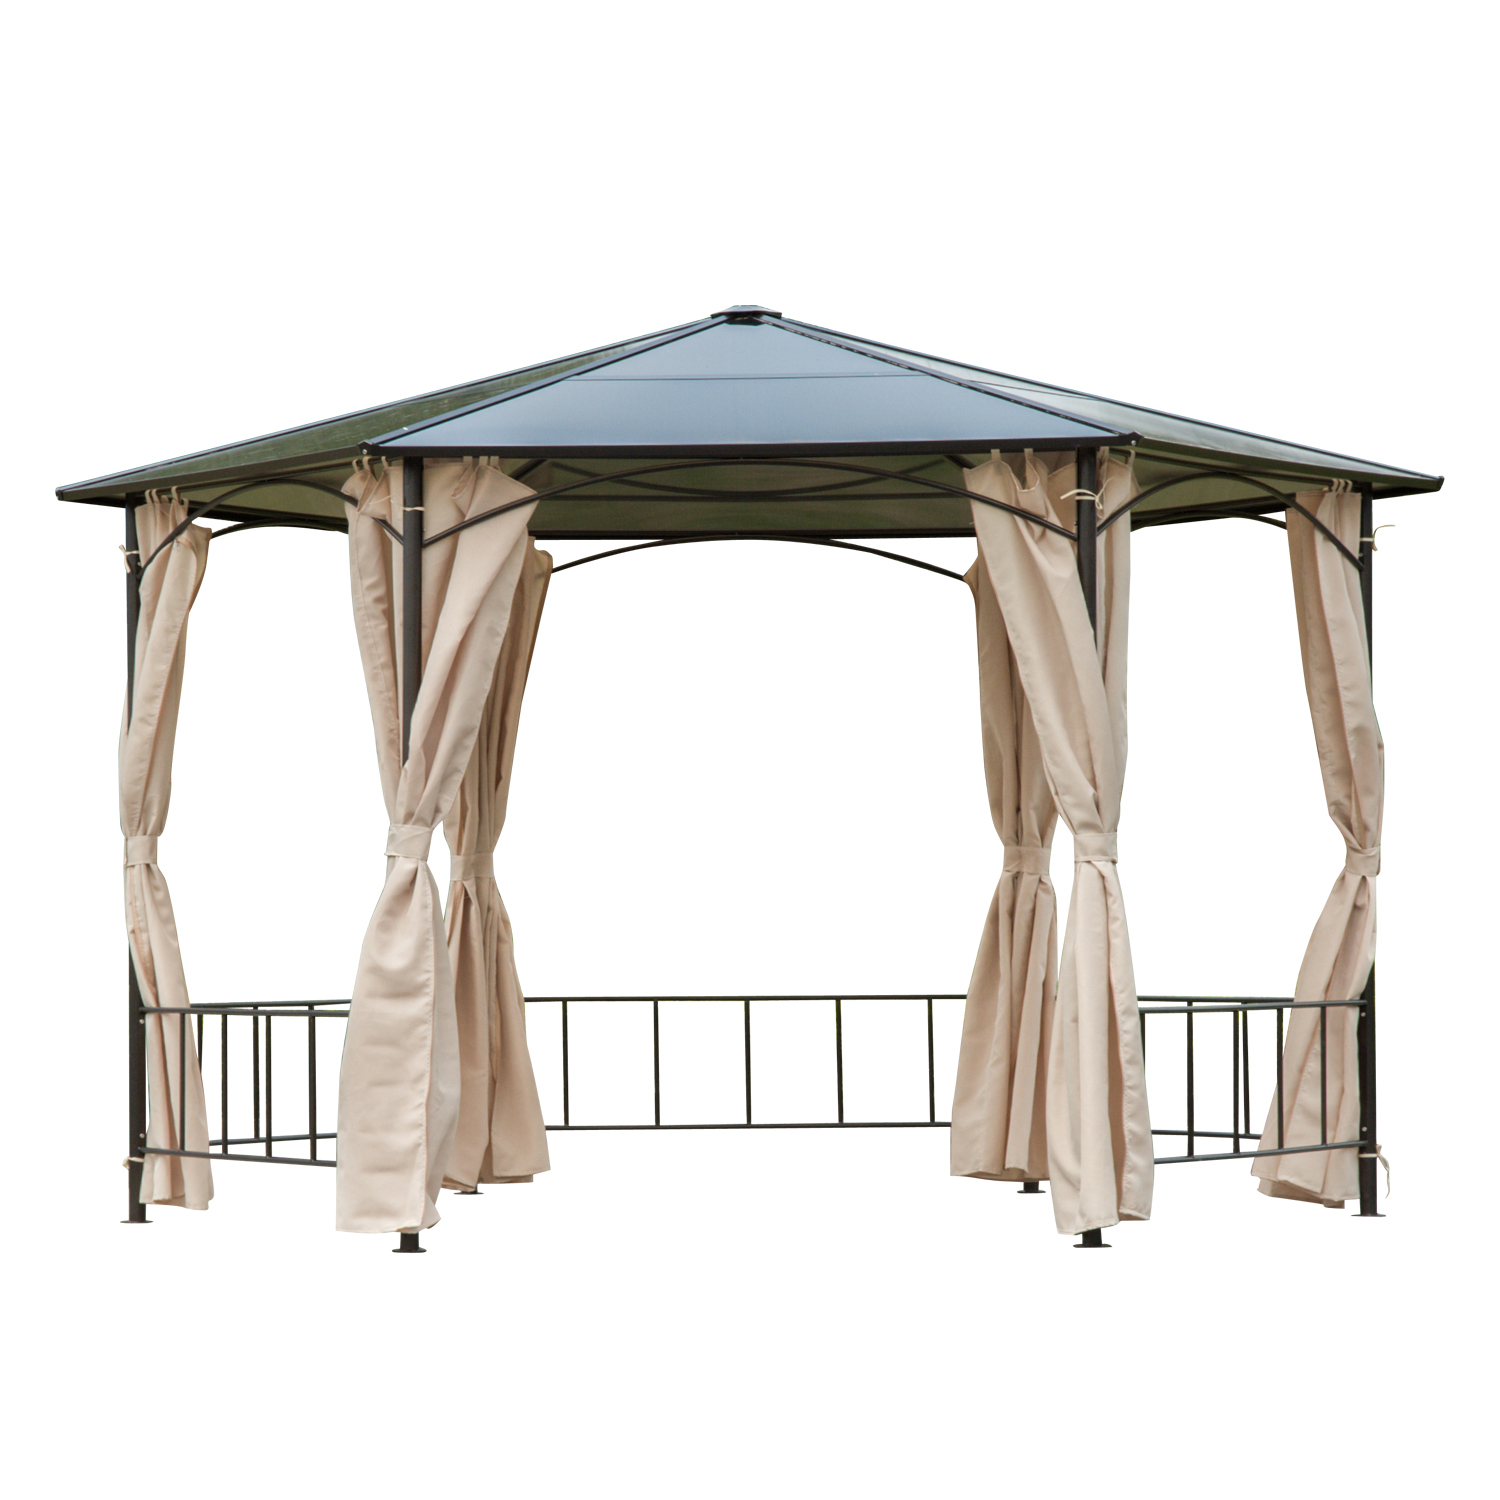 Outsunny 13 ft. Steel Hexagon Party Gazebo with Removable Curtains